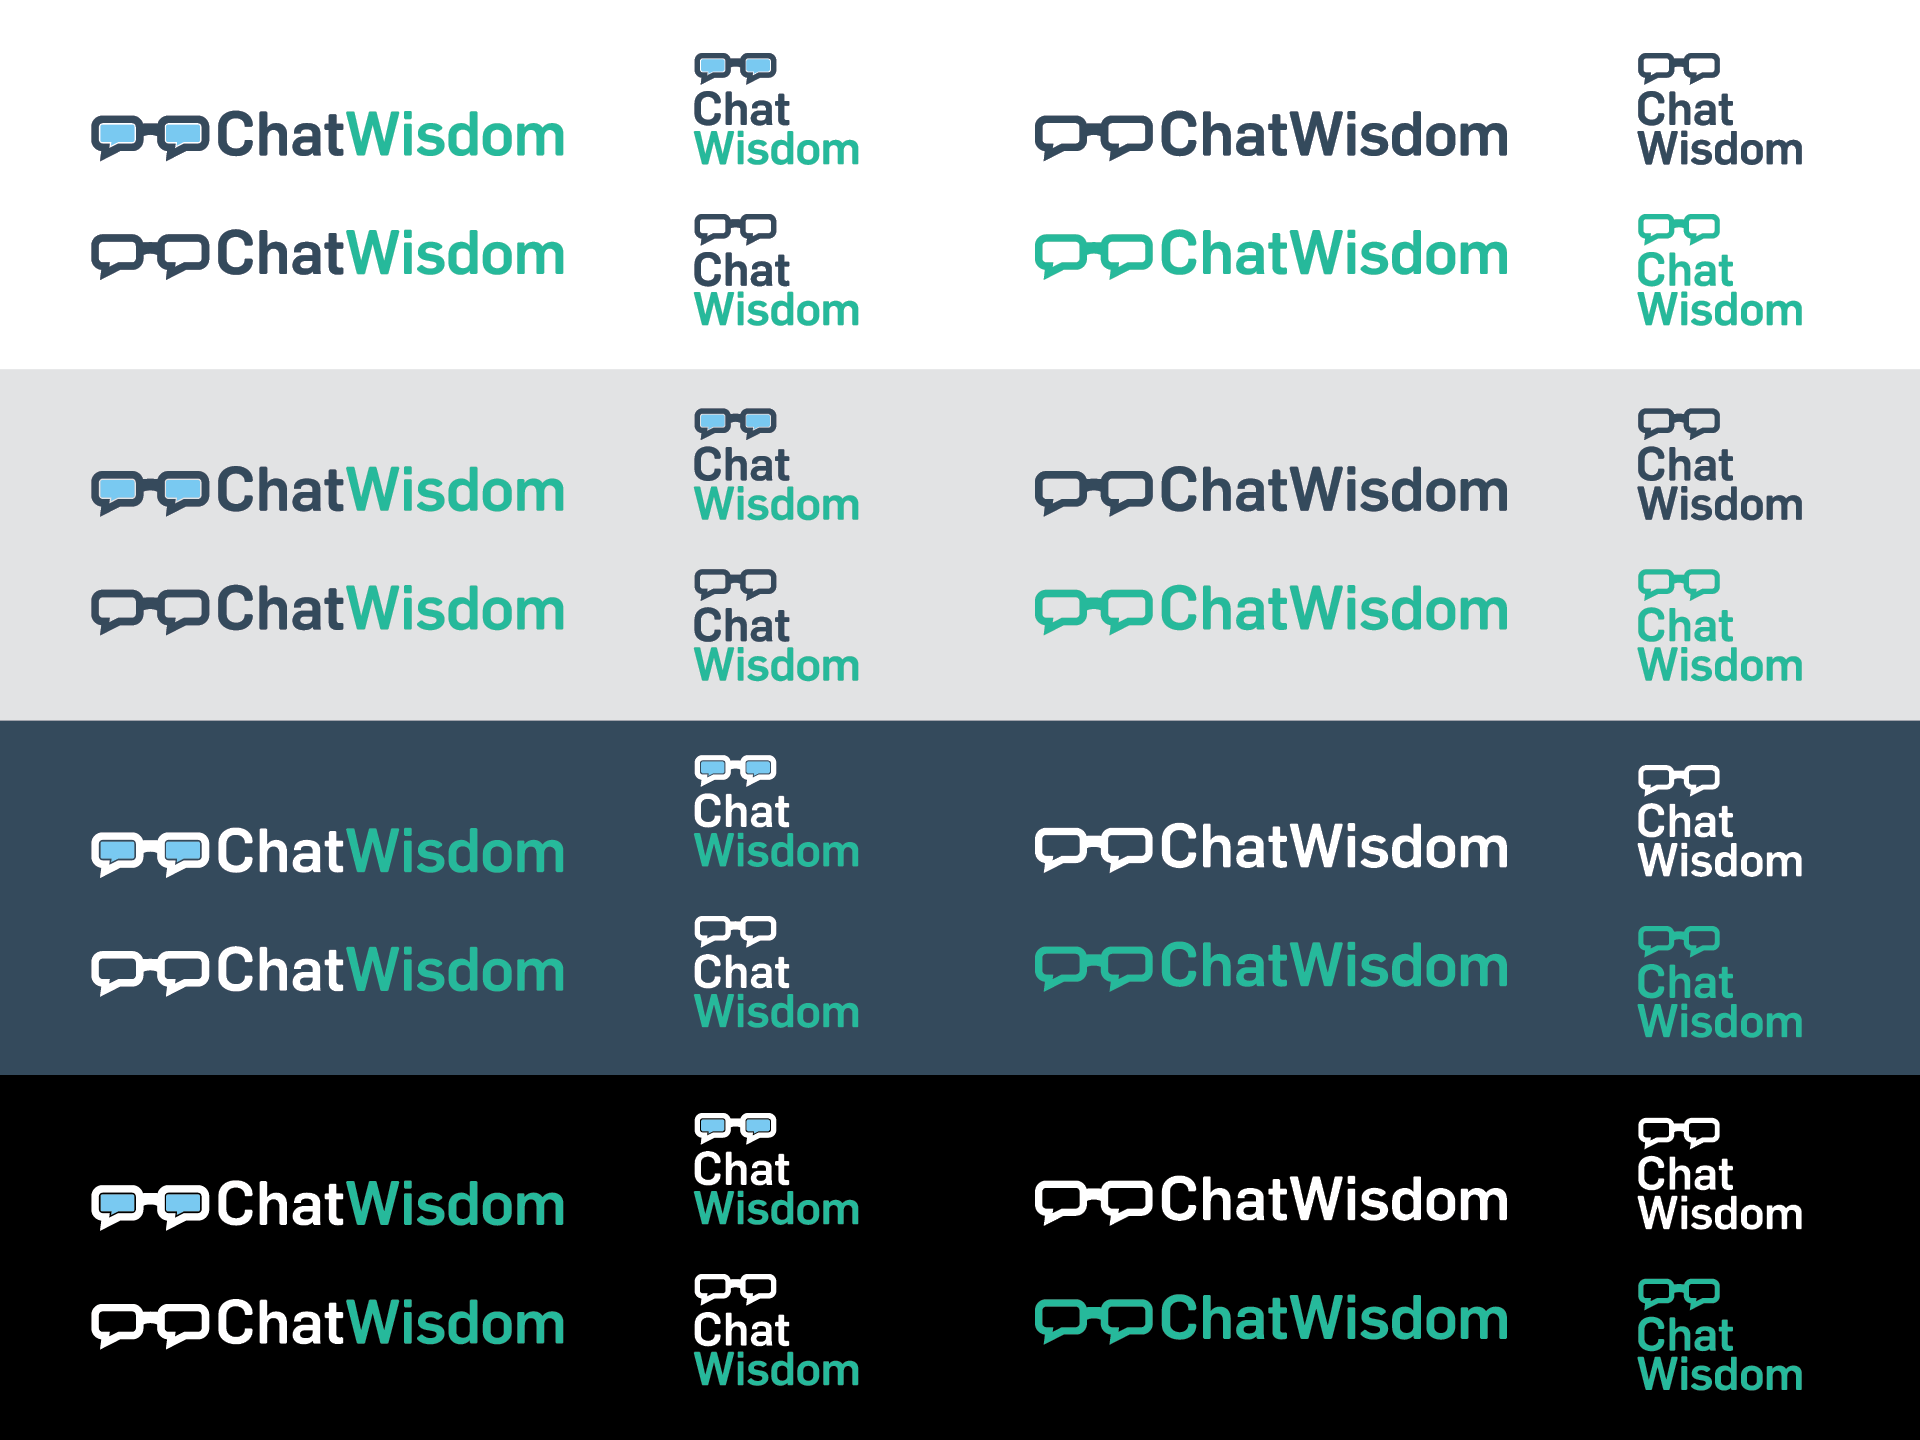 ChatWisdom logo system in multiple colour versions